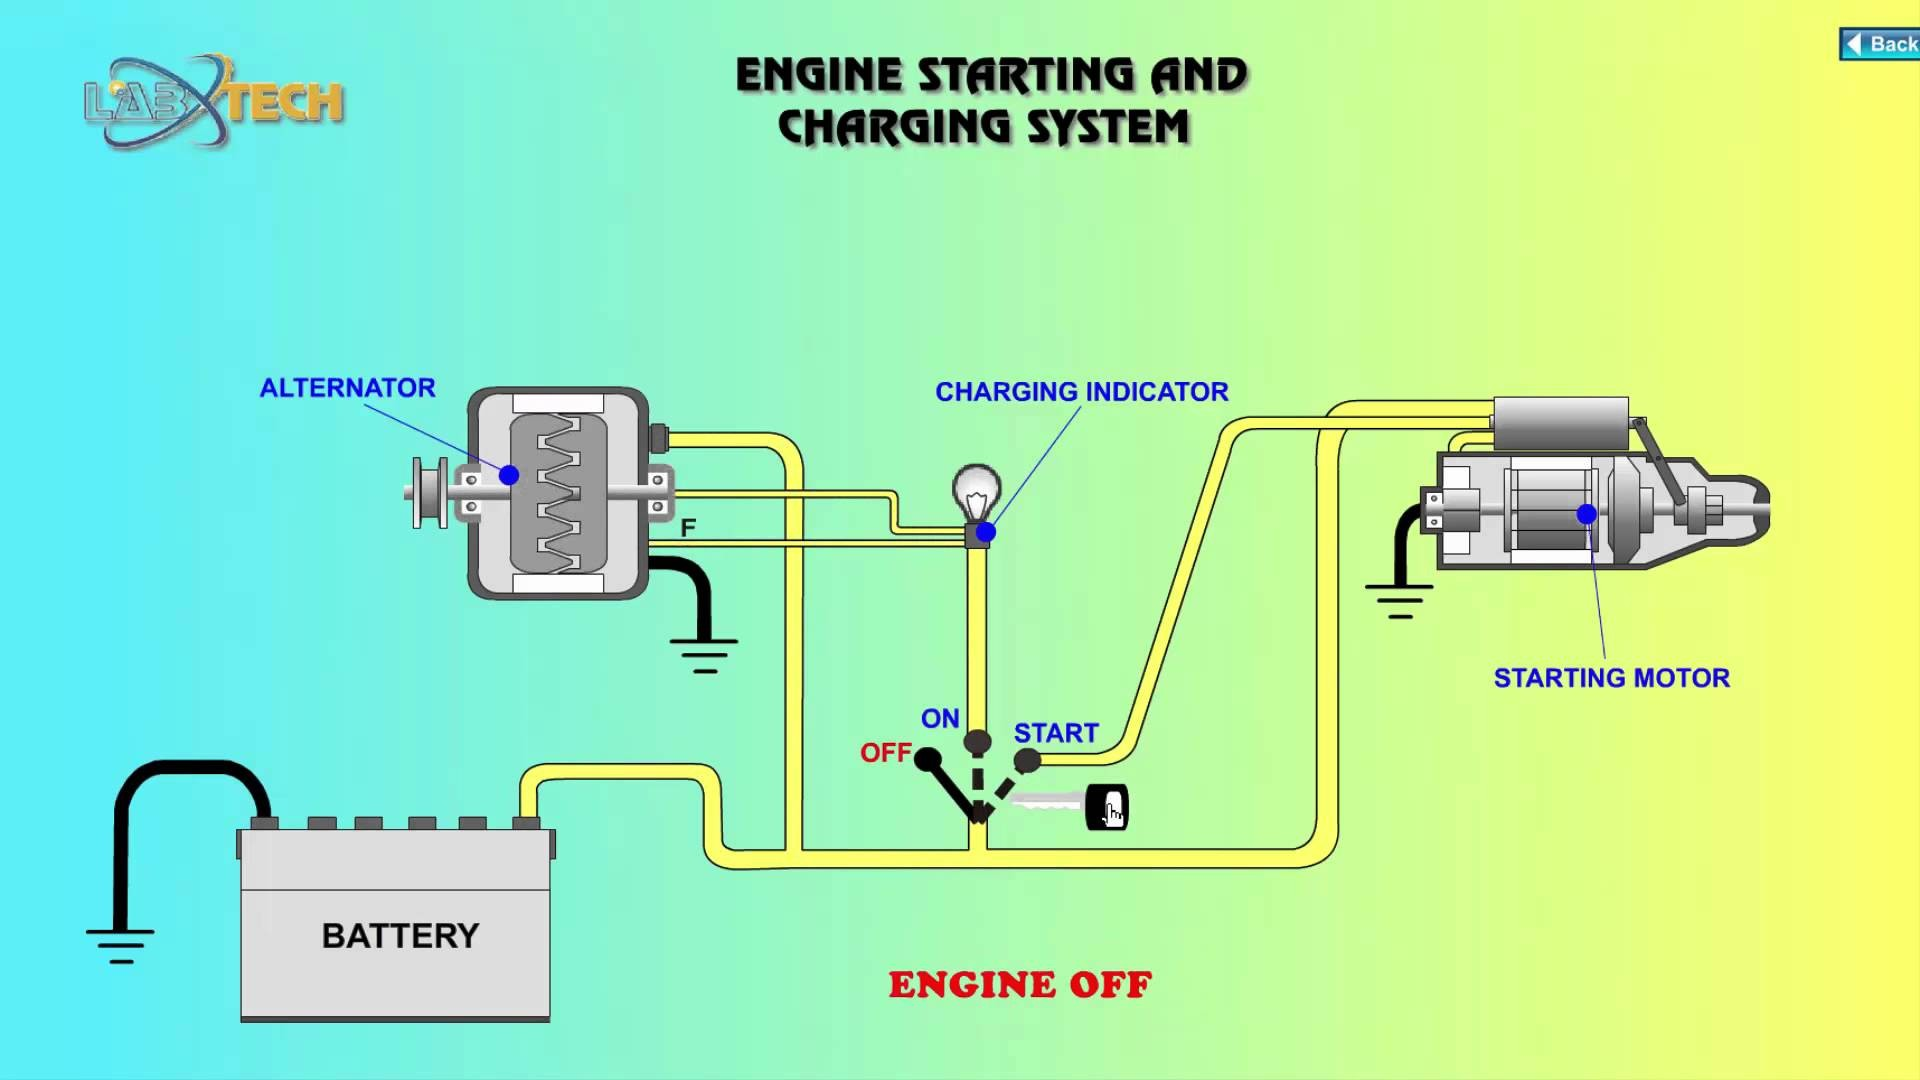 Engine Starting And Charging System Introduction Diagram